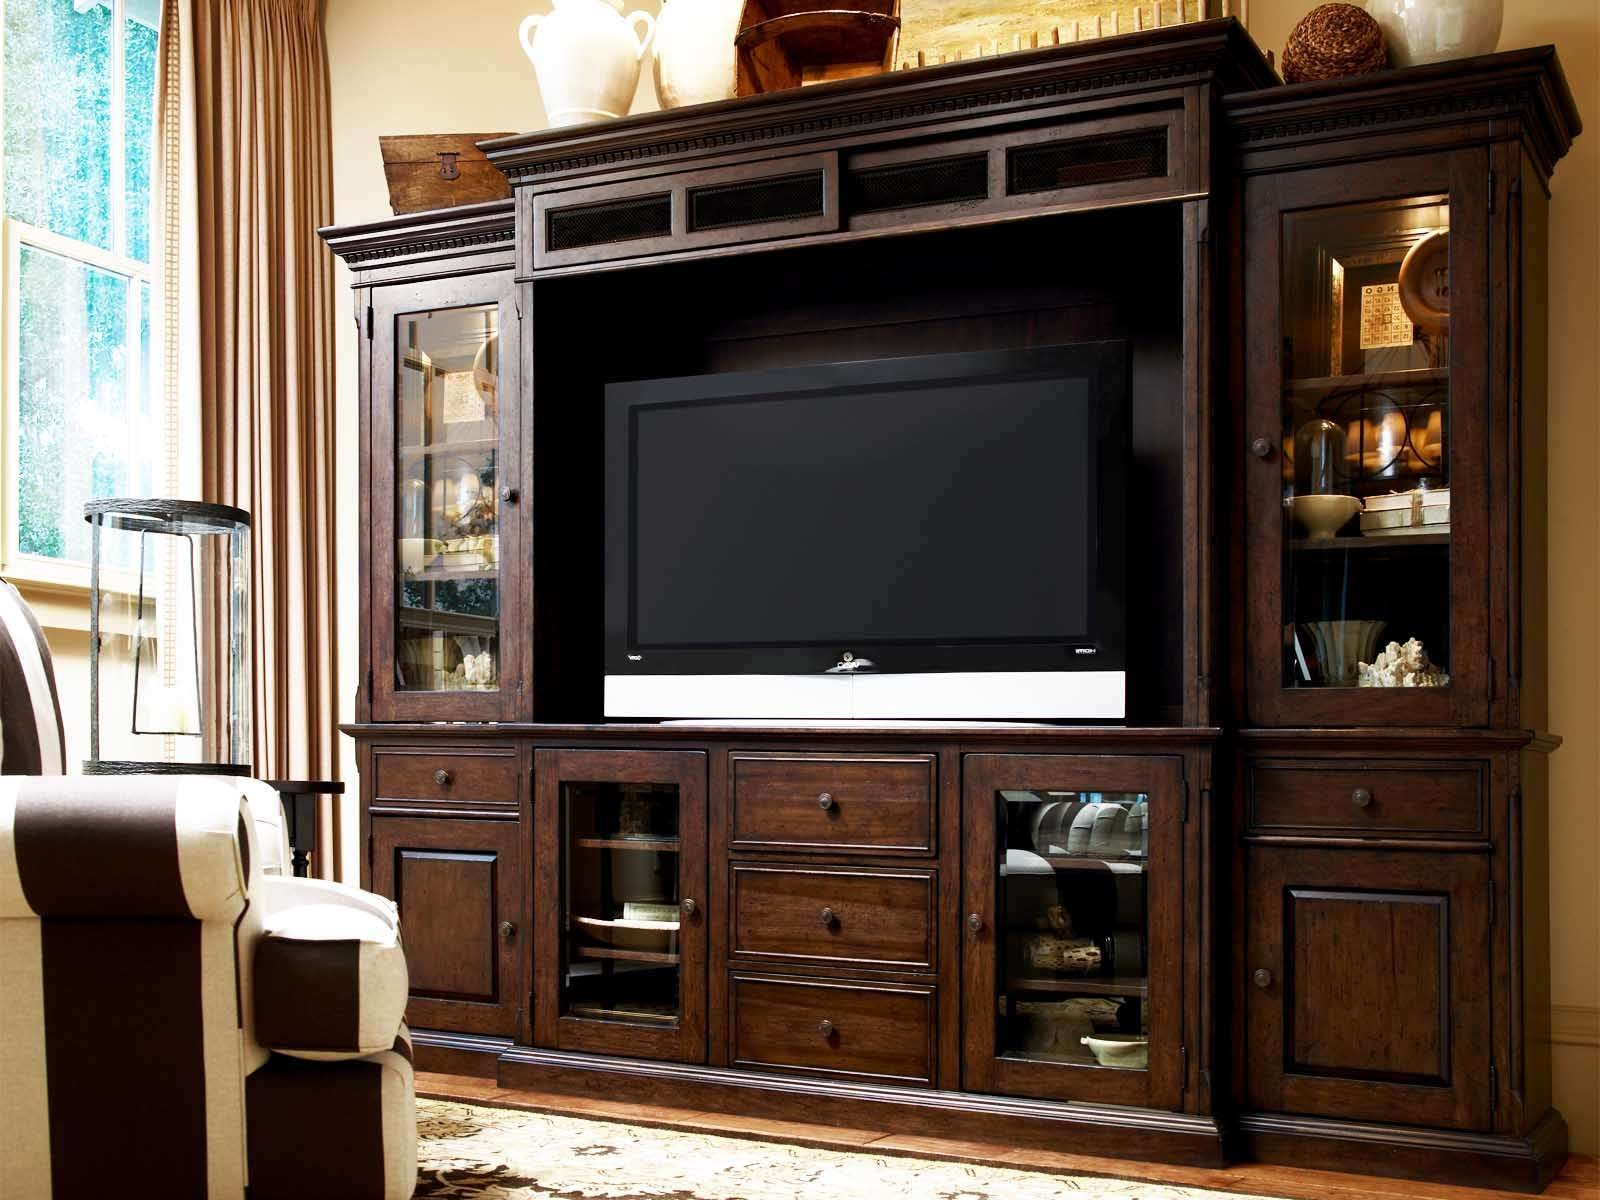 Tv Cabinets With Glass Doors Choice Image – Doors Design Ideas Throughout Glass Tv Cabinets With Doors (View 5 of 20)